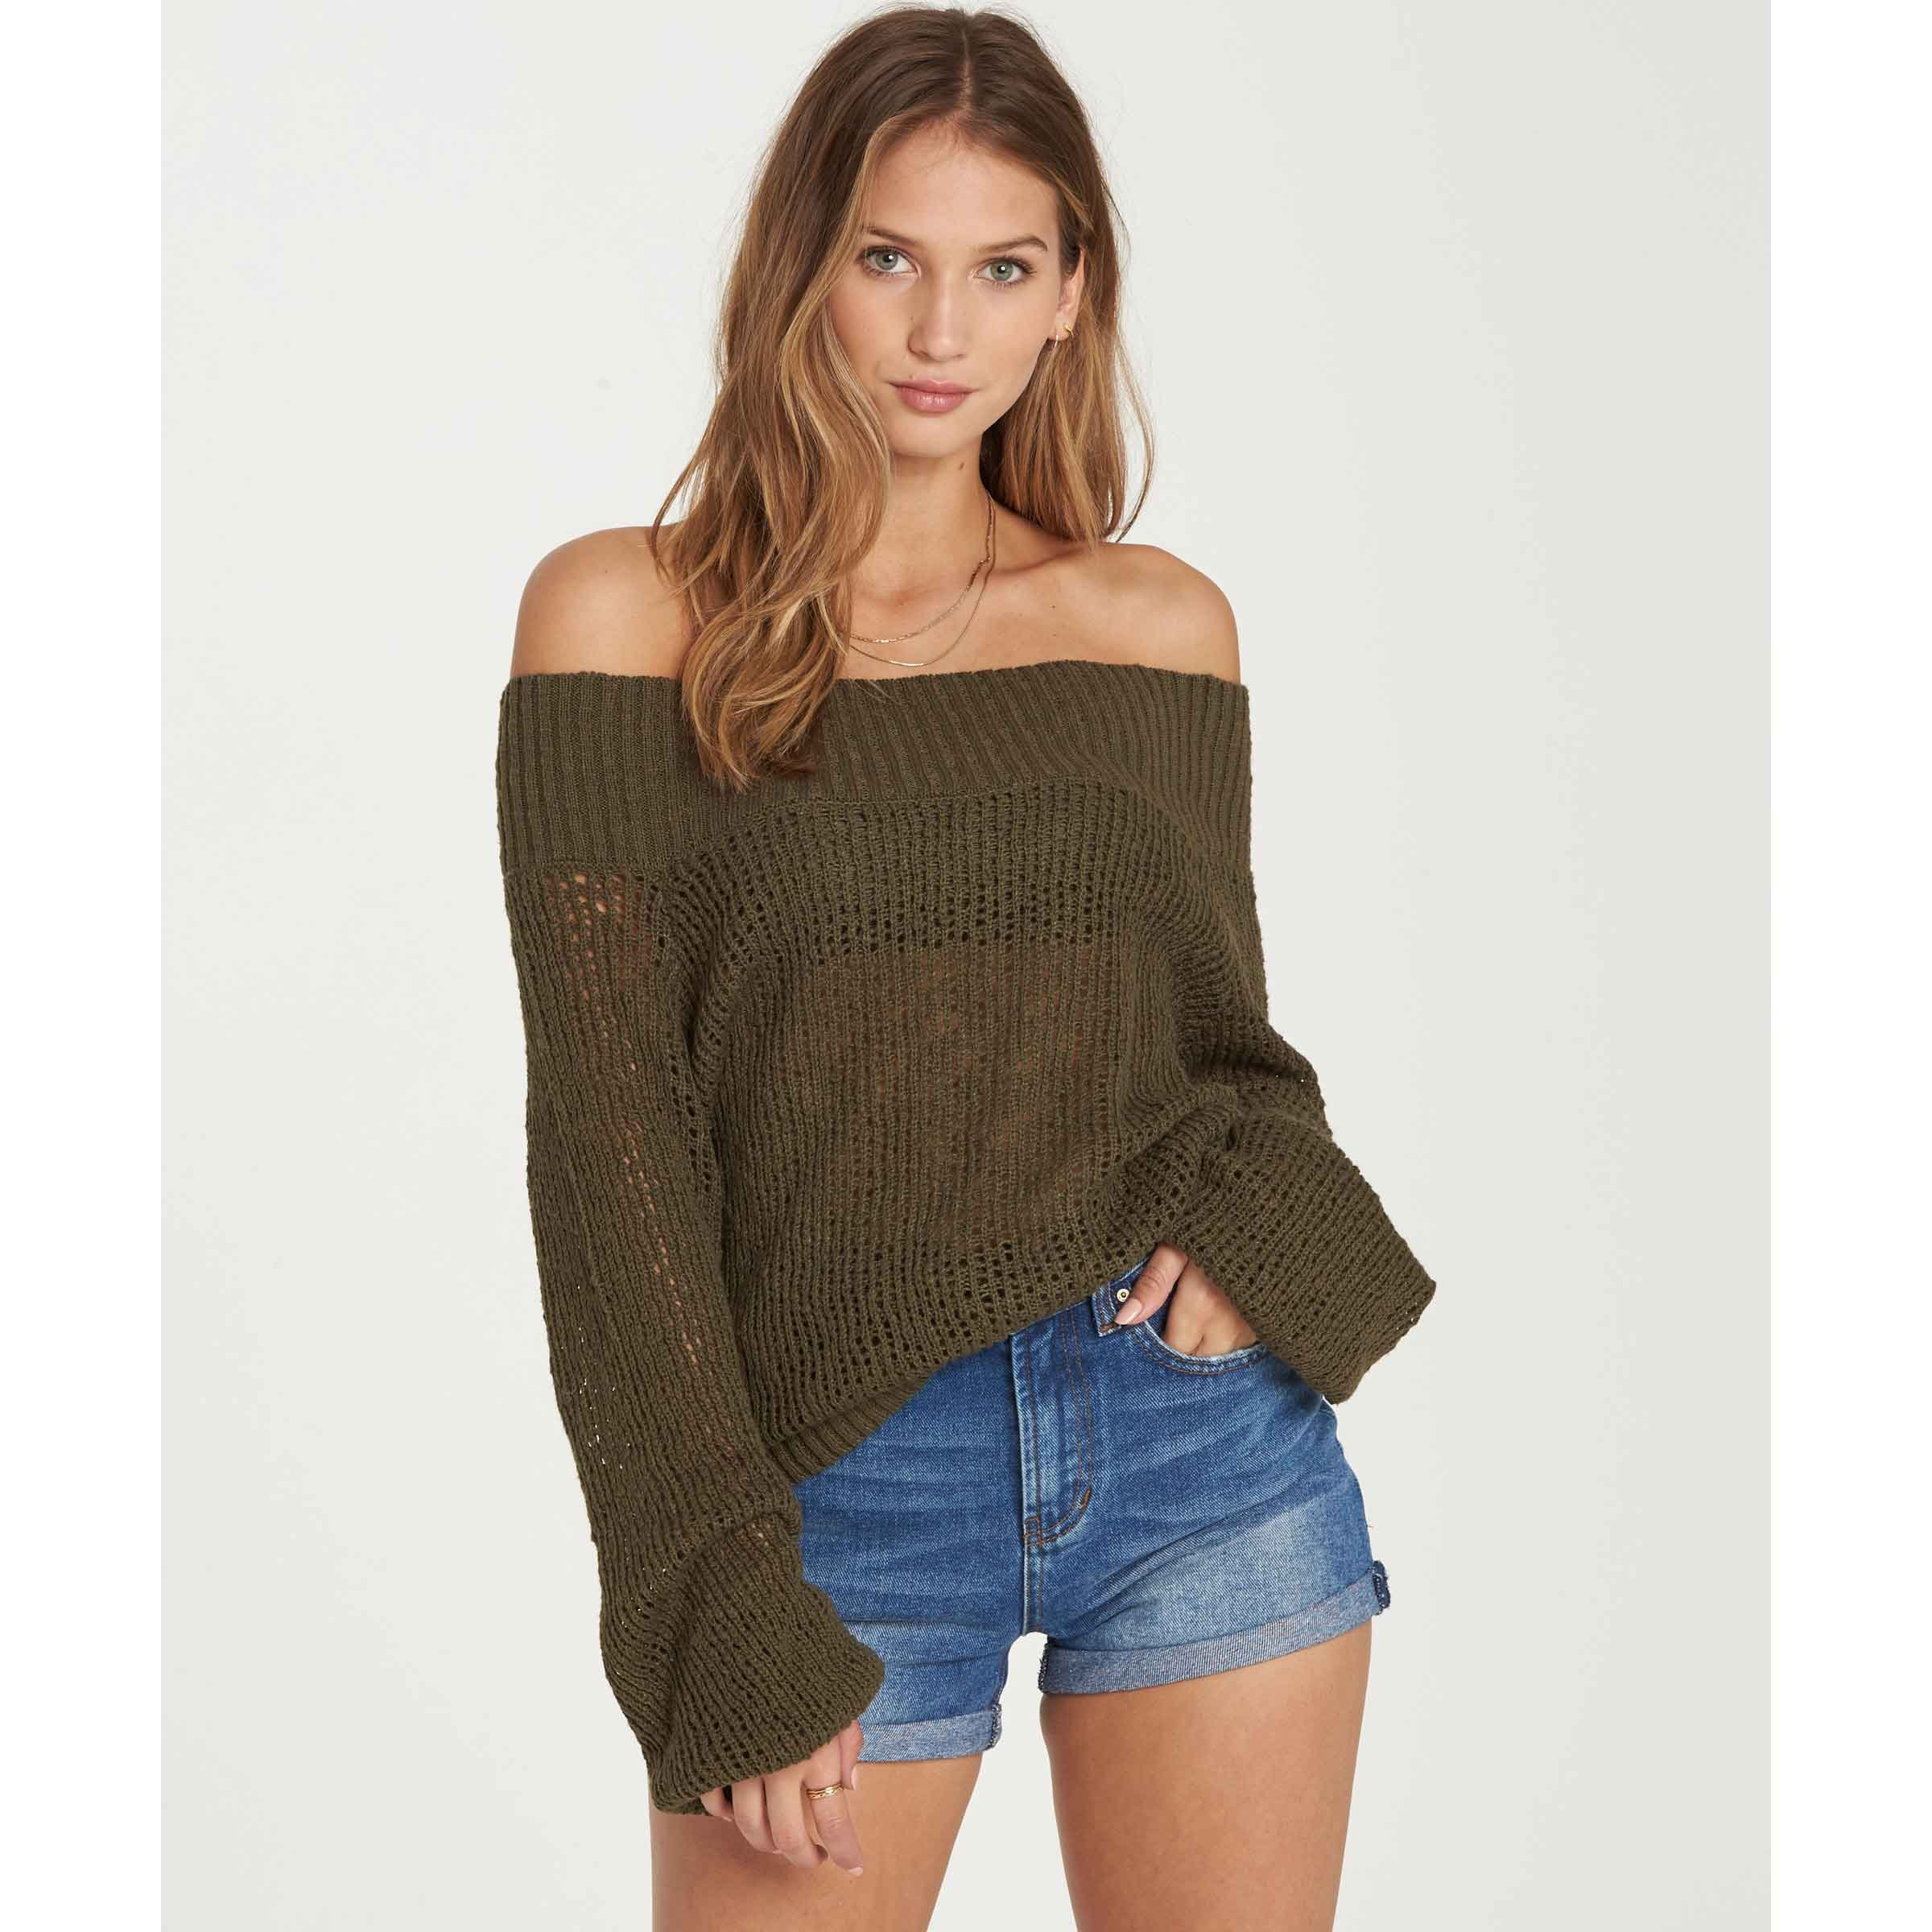 Billabong Women's Rolled up Sweater, Olive, S